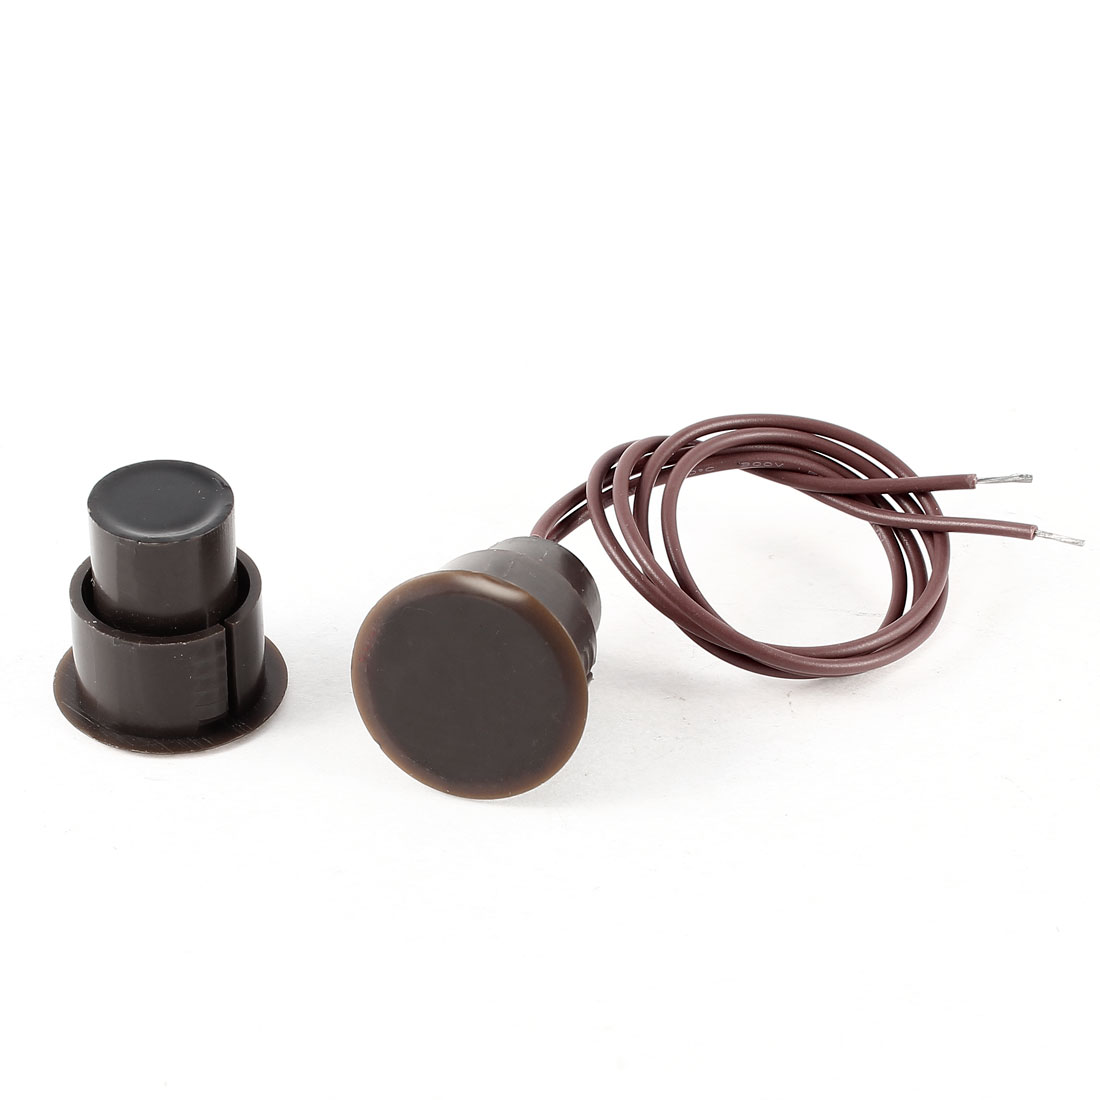 Brown Wired Recessed Window Door Alarm Security Magnet Contact Reed Switch